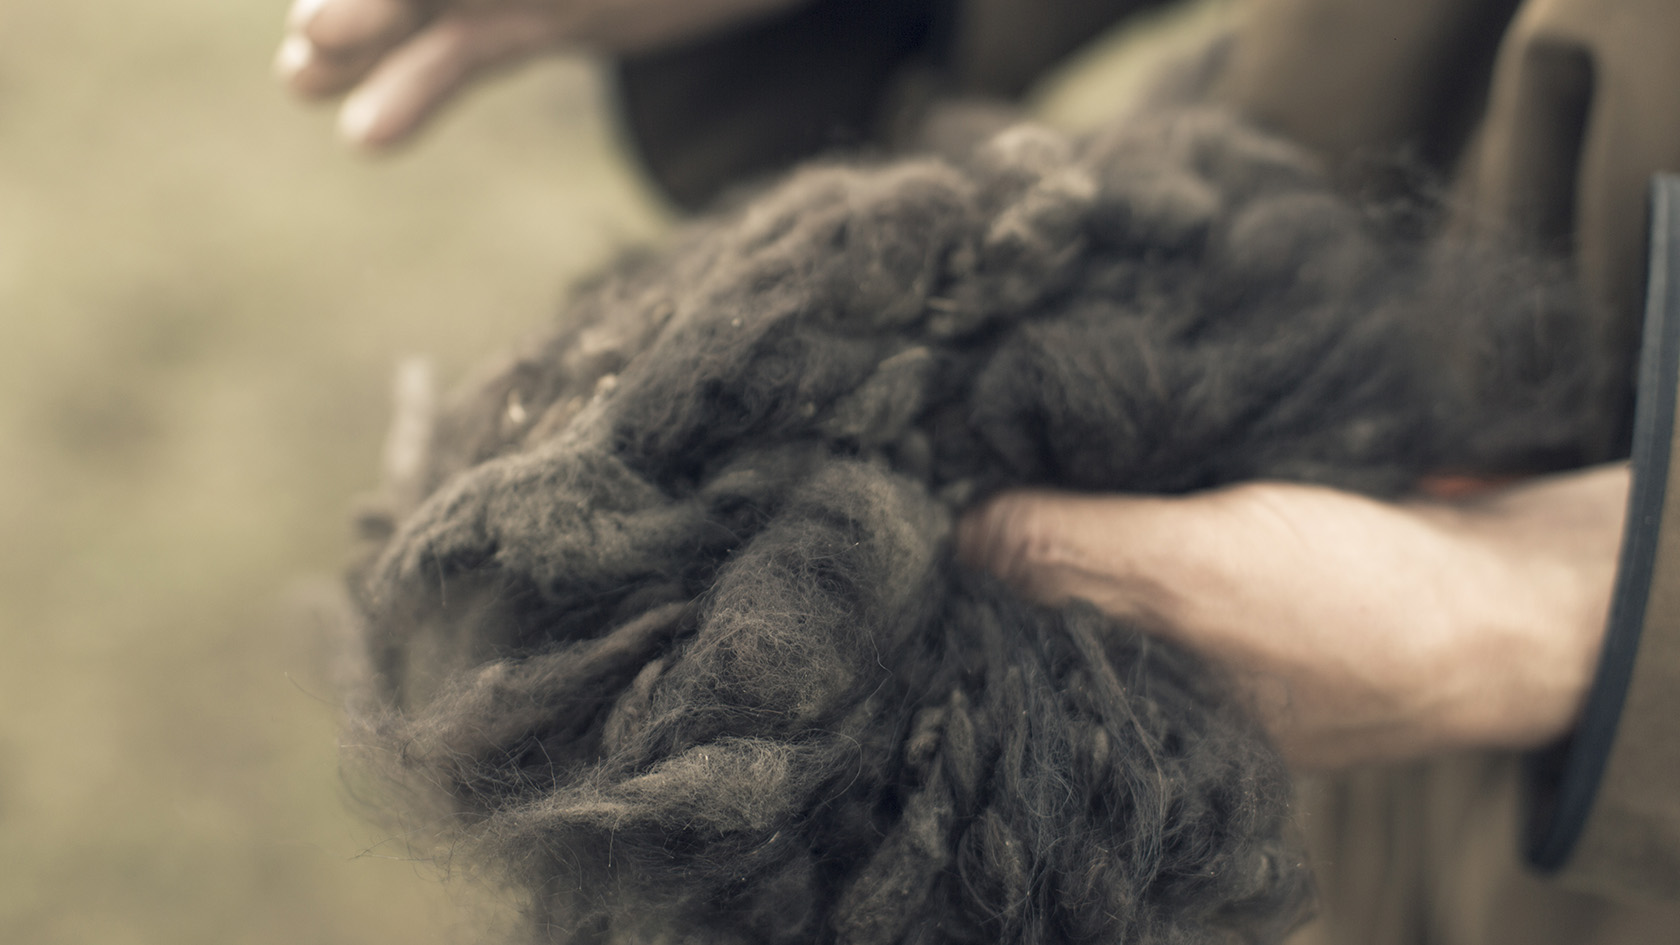 After combing, the fibres are hand-sorted into different grades, washed in gentle soap and water and dried, before being spun into Tengri Noble Yarns and Fabrics.